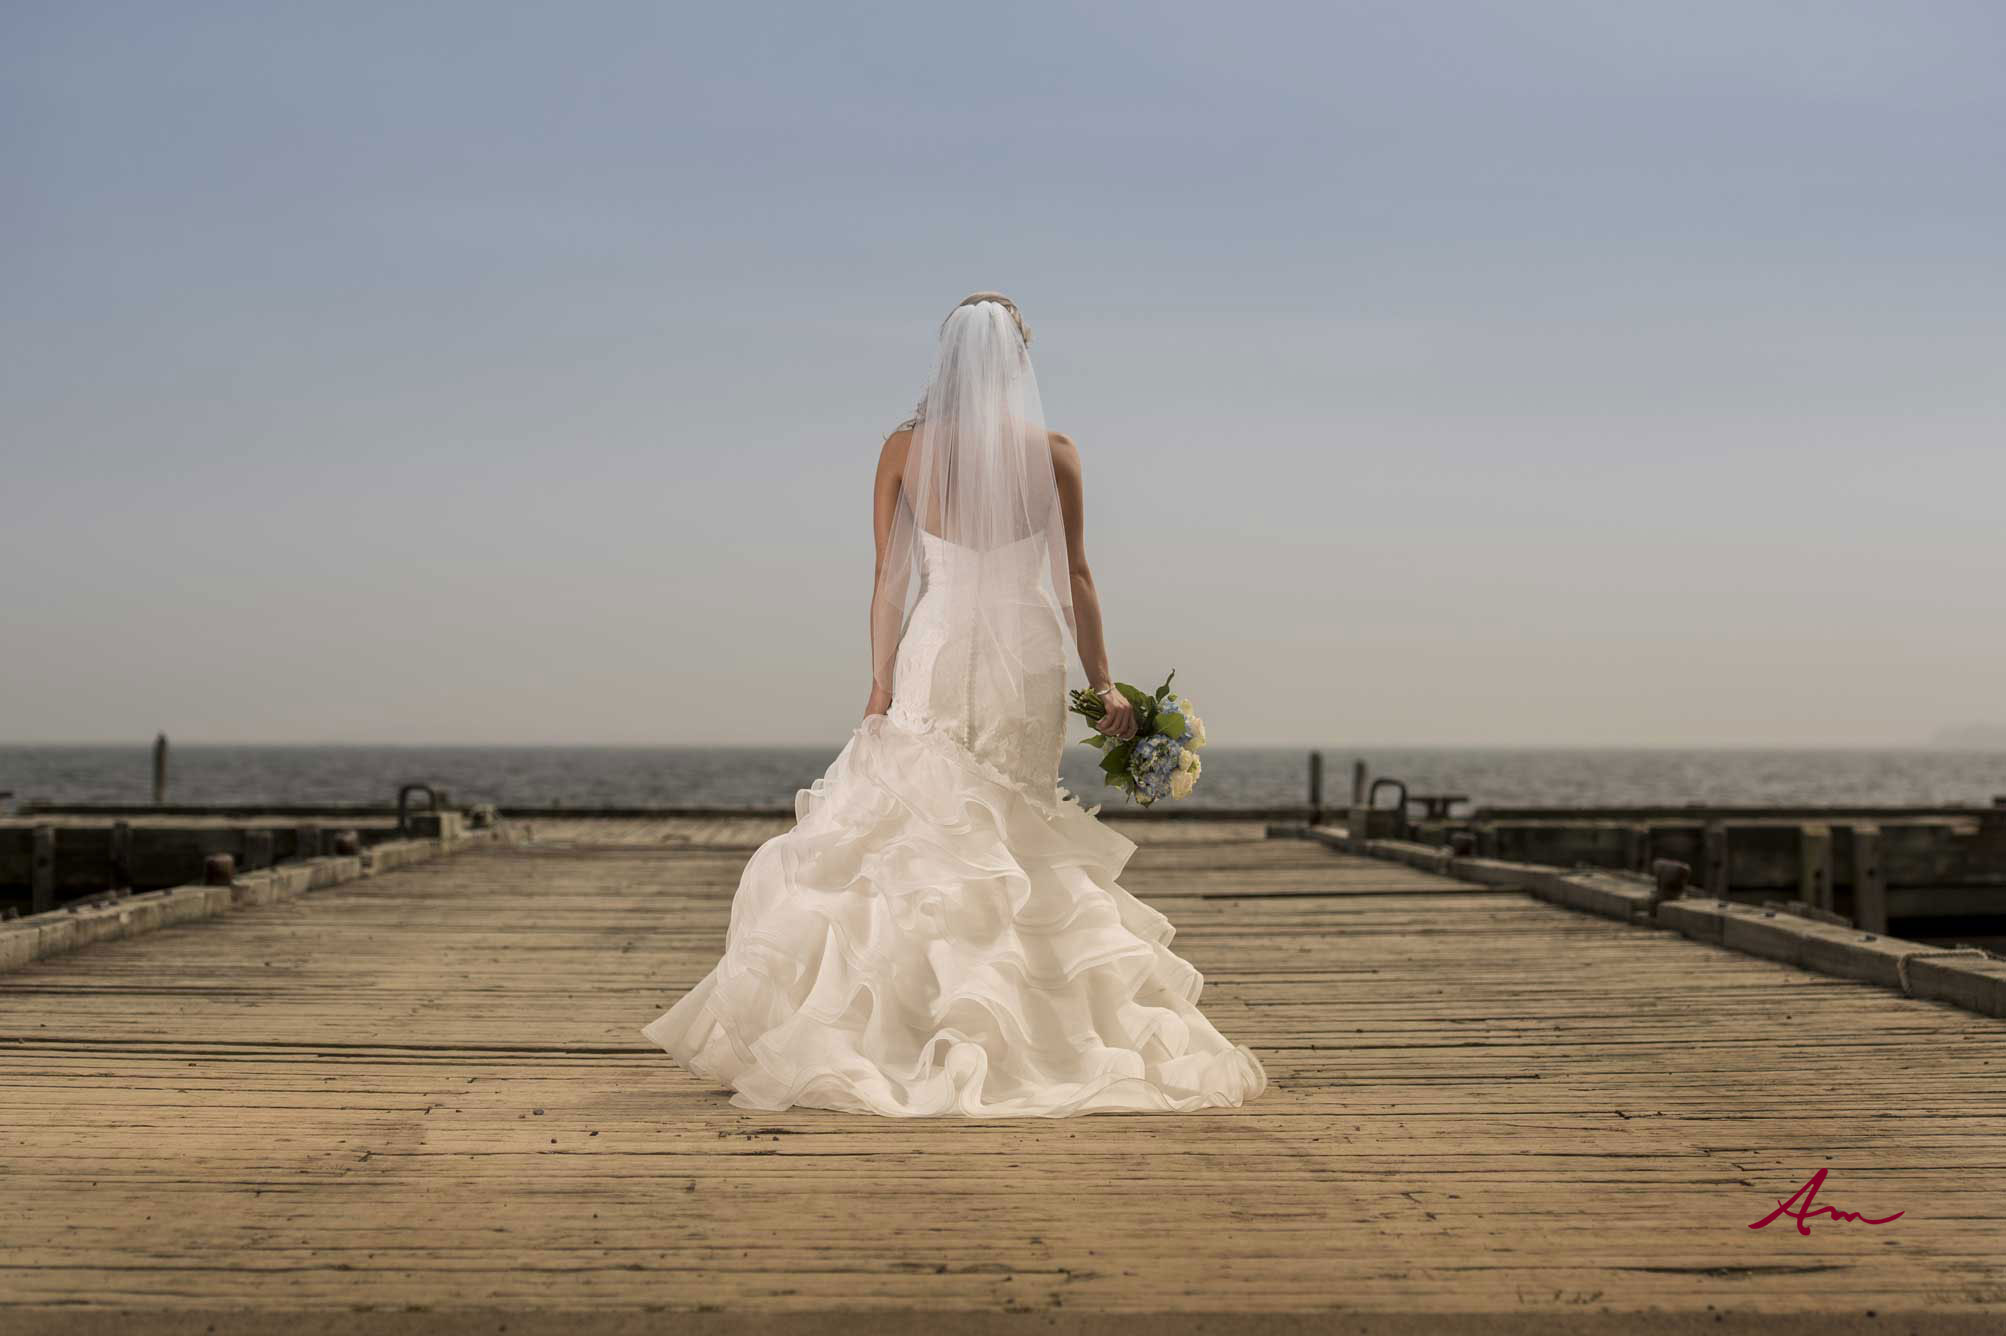 Liscombe-wedding-bride-dock.jpg